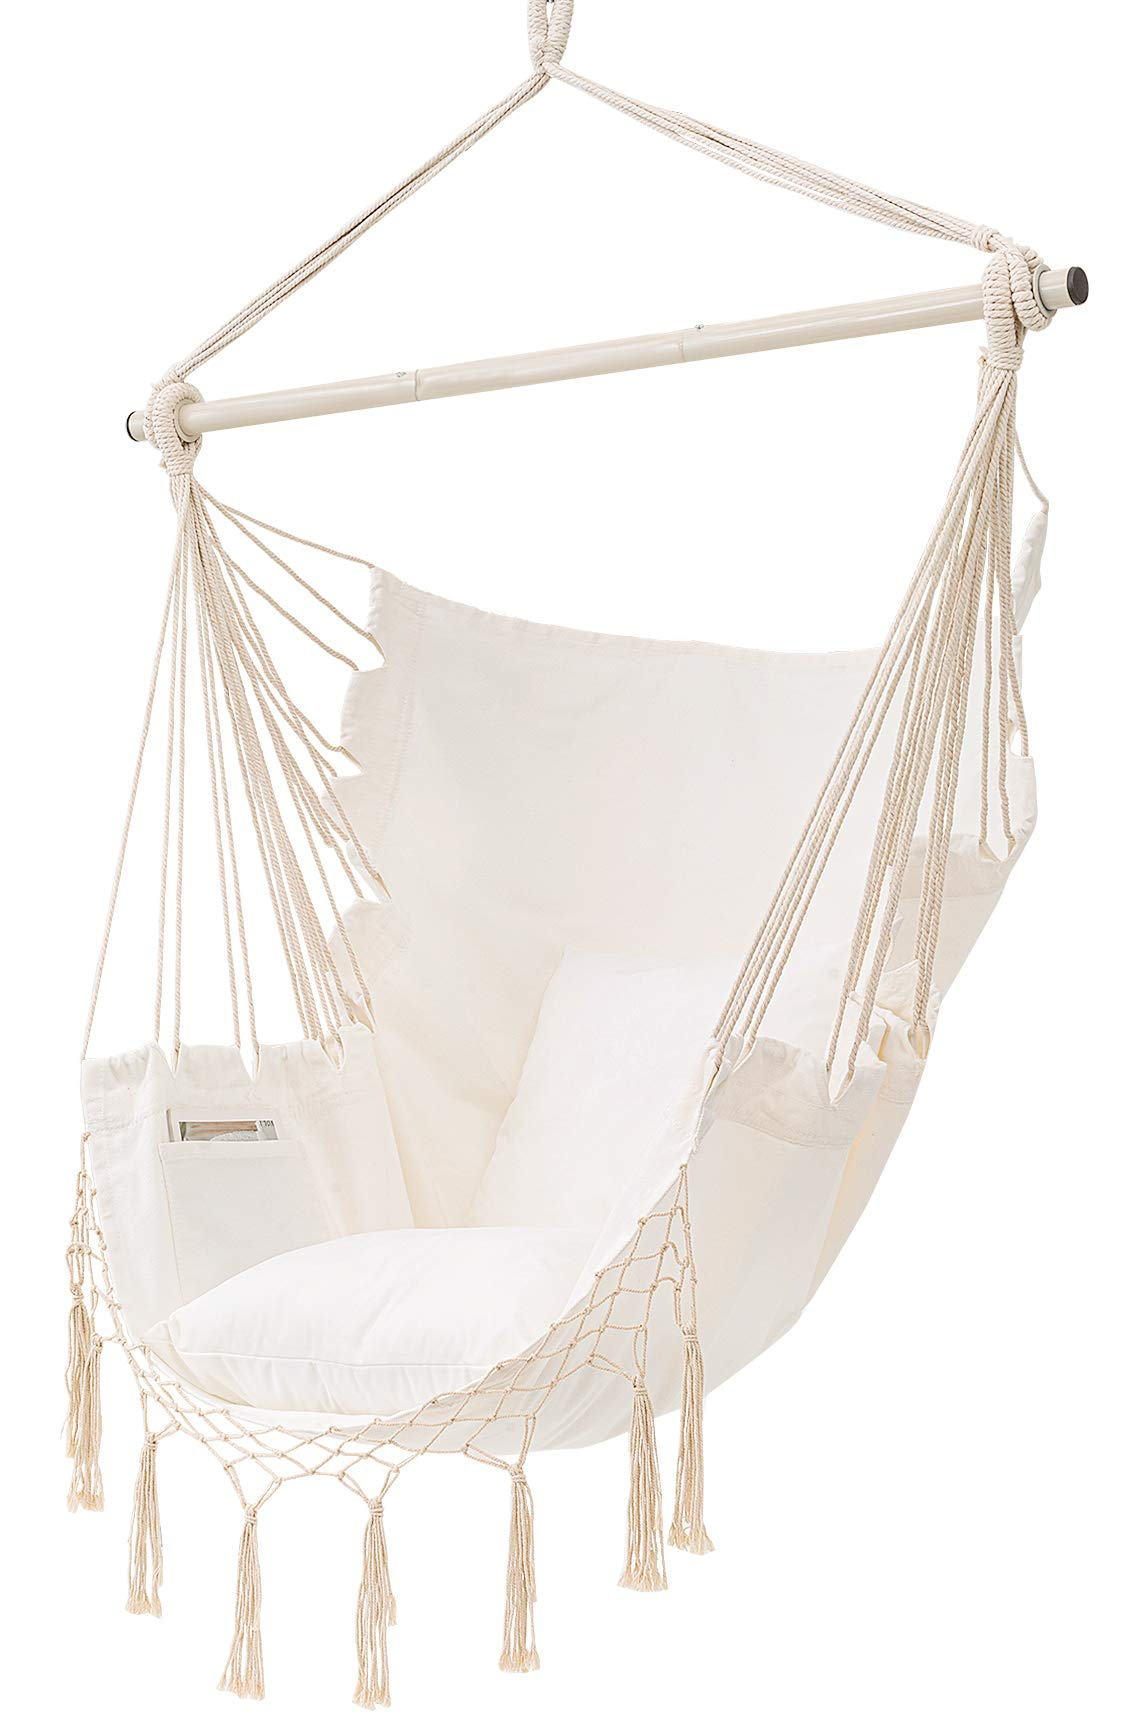 MoonLa Hammock Chair Hanging Rope Swing Seat Chair with Pocket Max 350 Lbs for Indoor Outdoor Home Bedroom Garden, Seat Cushions Not Included (Beige)